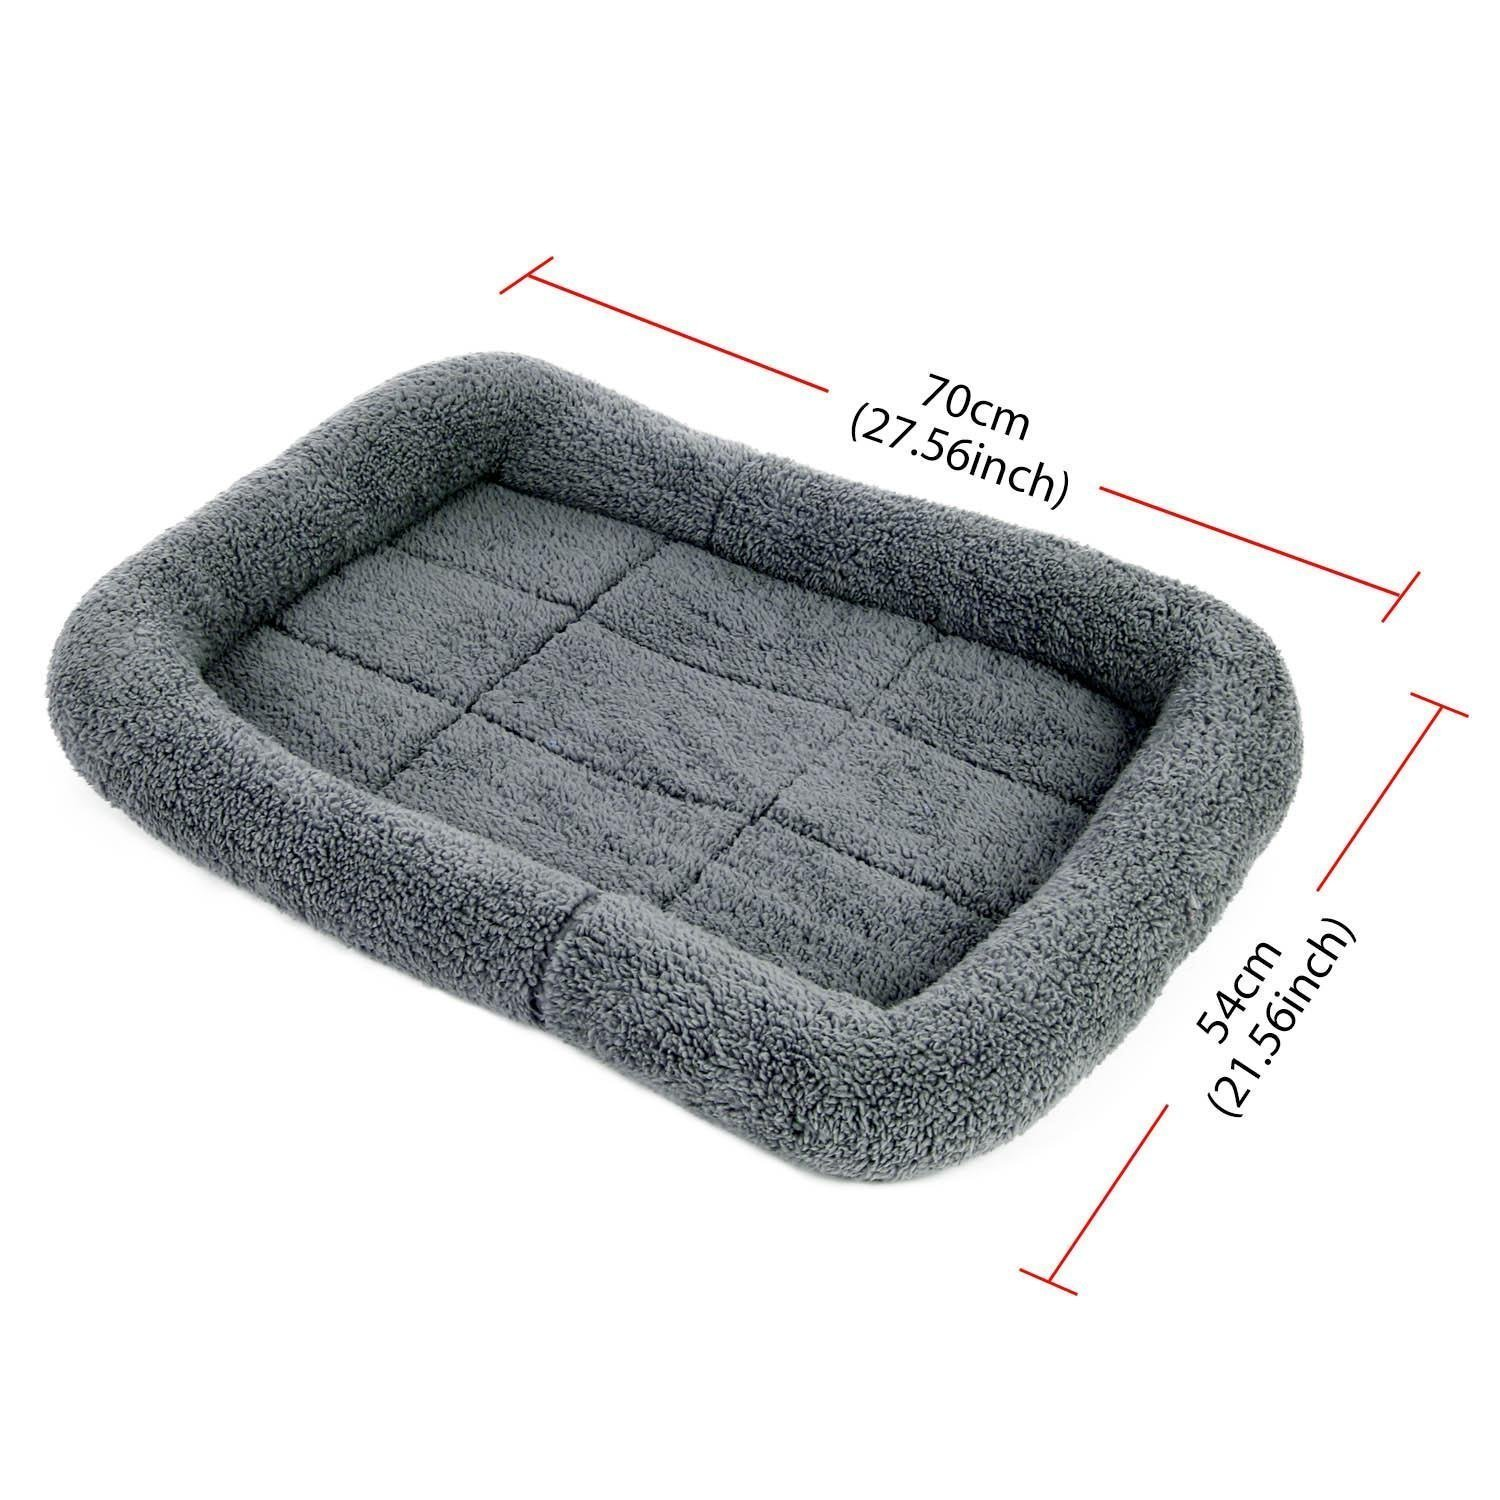 Pecute Pet Cushion Sleeping Mat for Dog Comfortable Coral Velvet Pillow Crate Bed (27.5*21.2INCH)